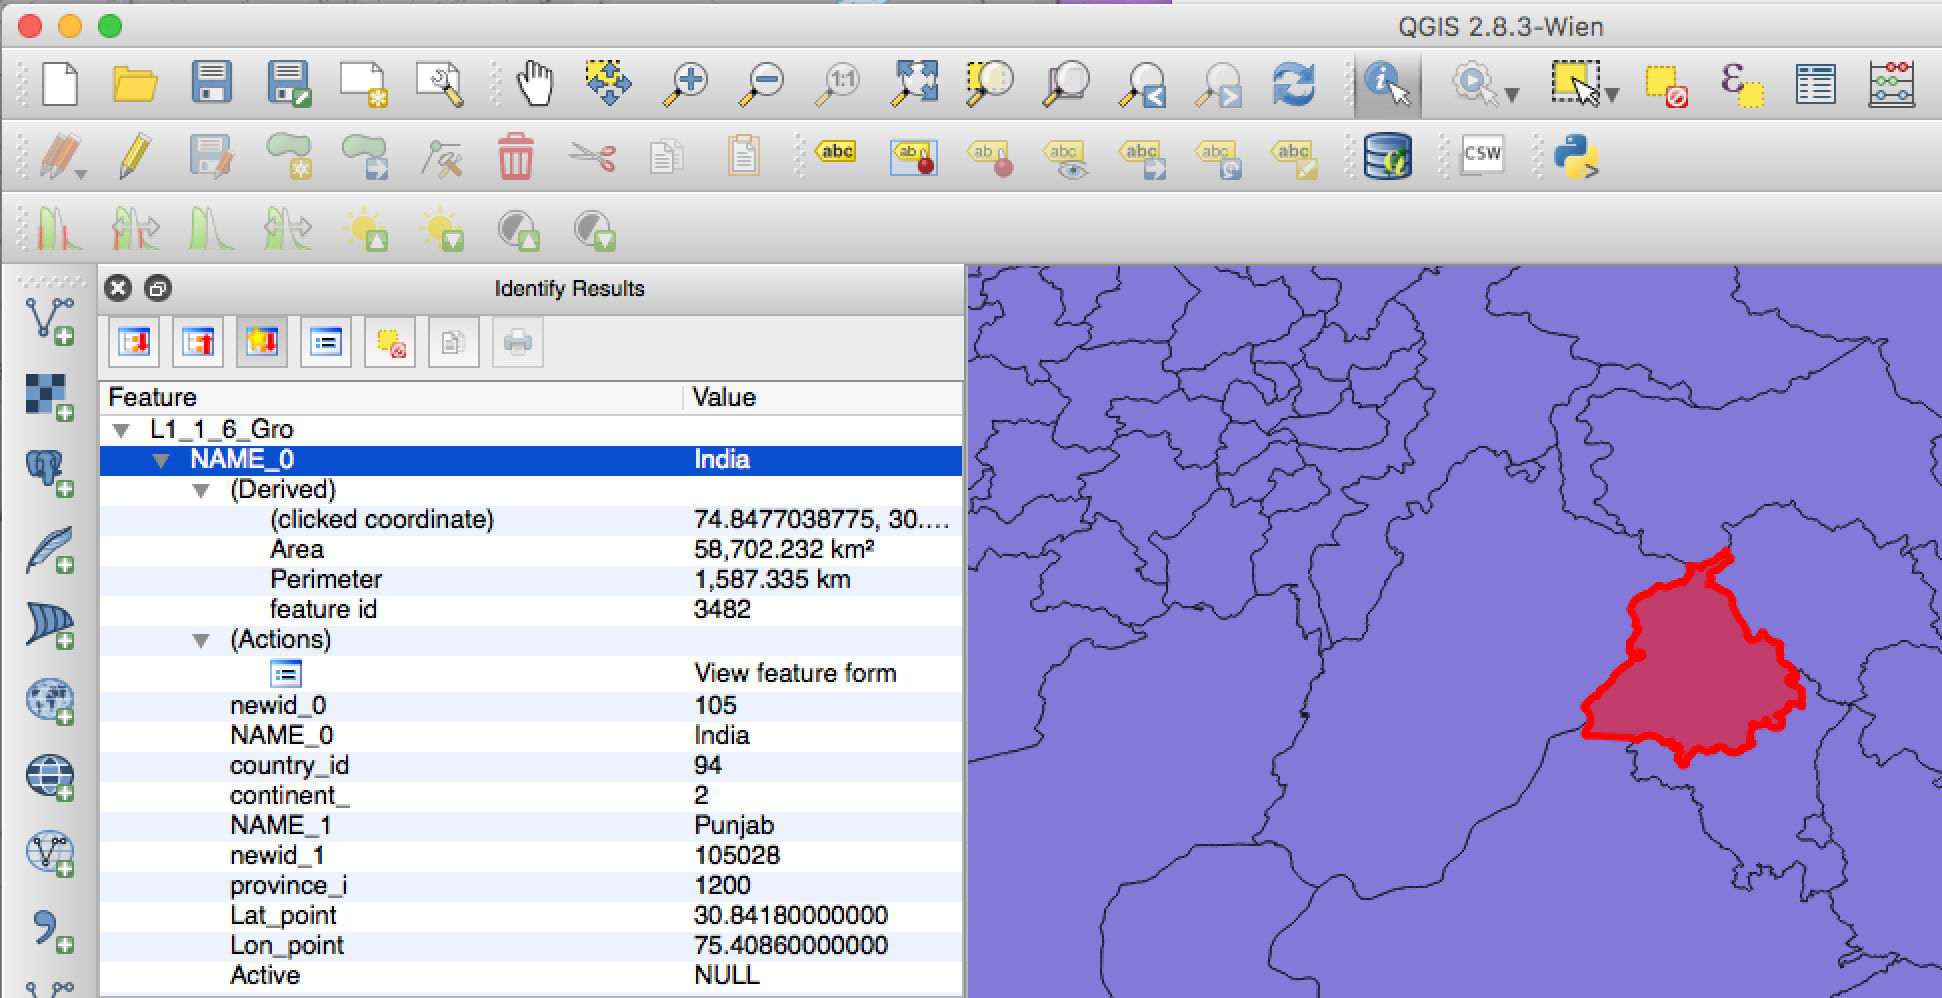 How to create a map visualization by using Tilemill, QGIS